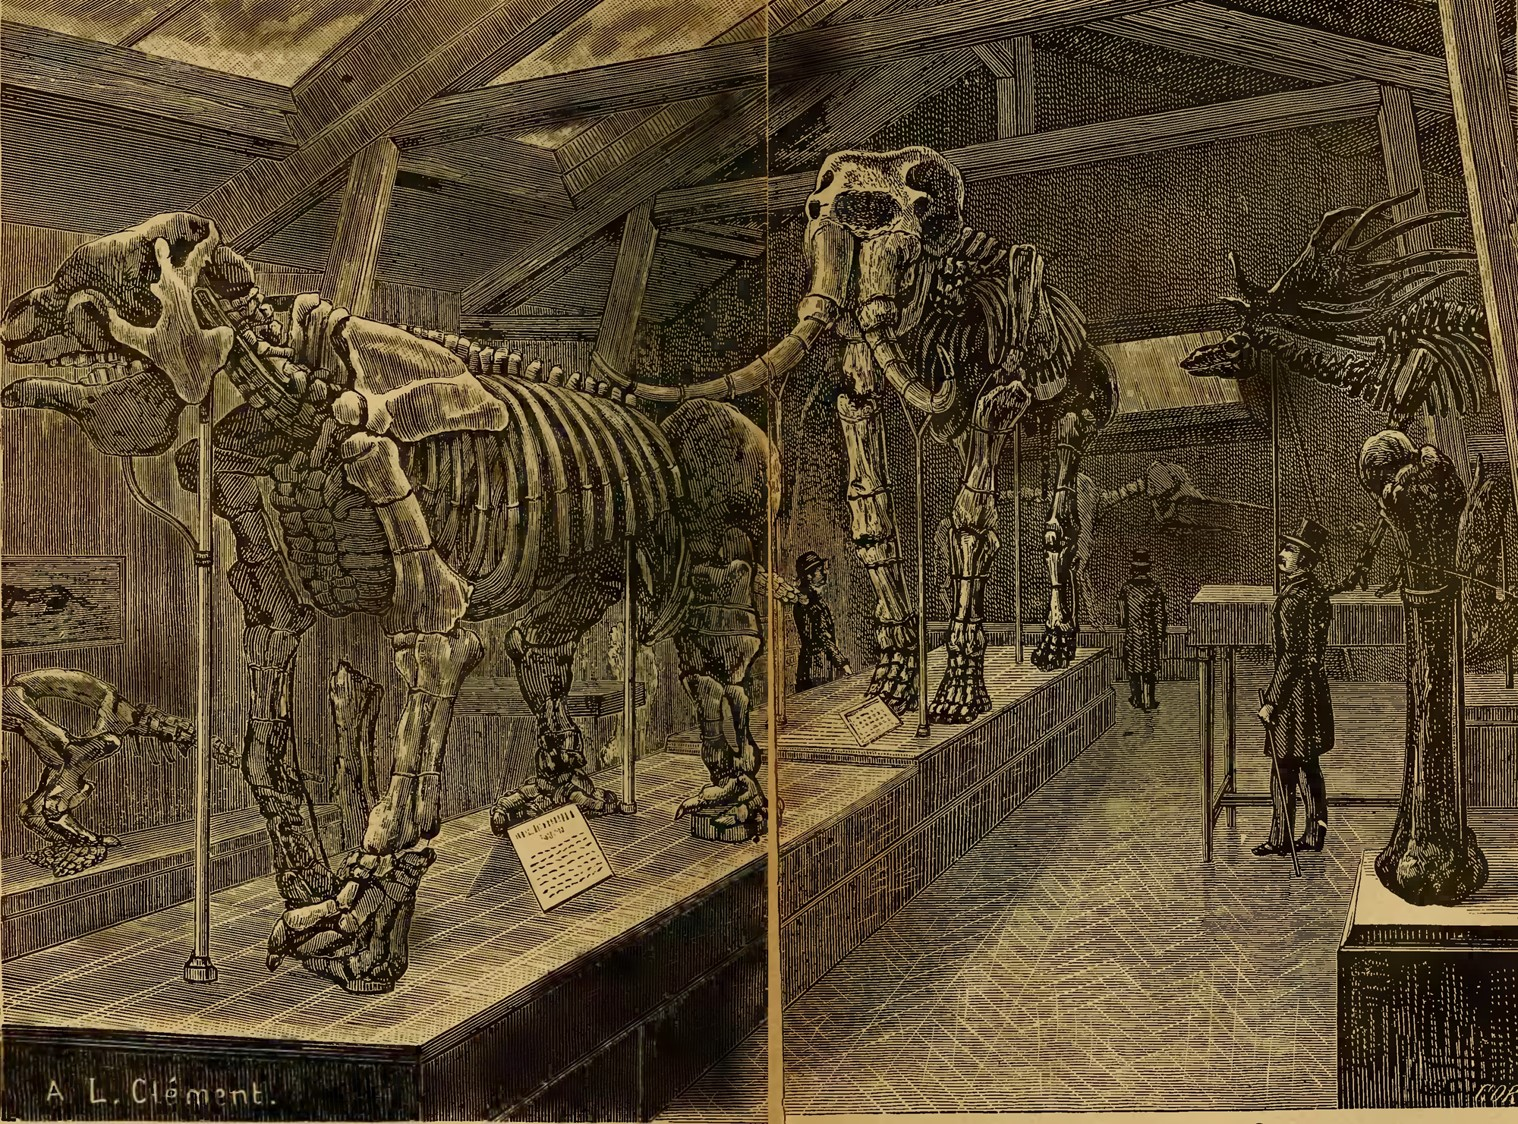 Gallery of Palaeontology in Paris, from Albert Gaudry,  Les   ancêtres de nos animaux dans les temps géologiques  (1888)  Image from the Biodiversity Heritage Library. Digitized by Harvard University, Museum of Comparative Zoology, Ernst Mayr Library.  www.biodiversitylibrary.org